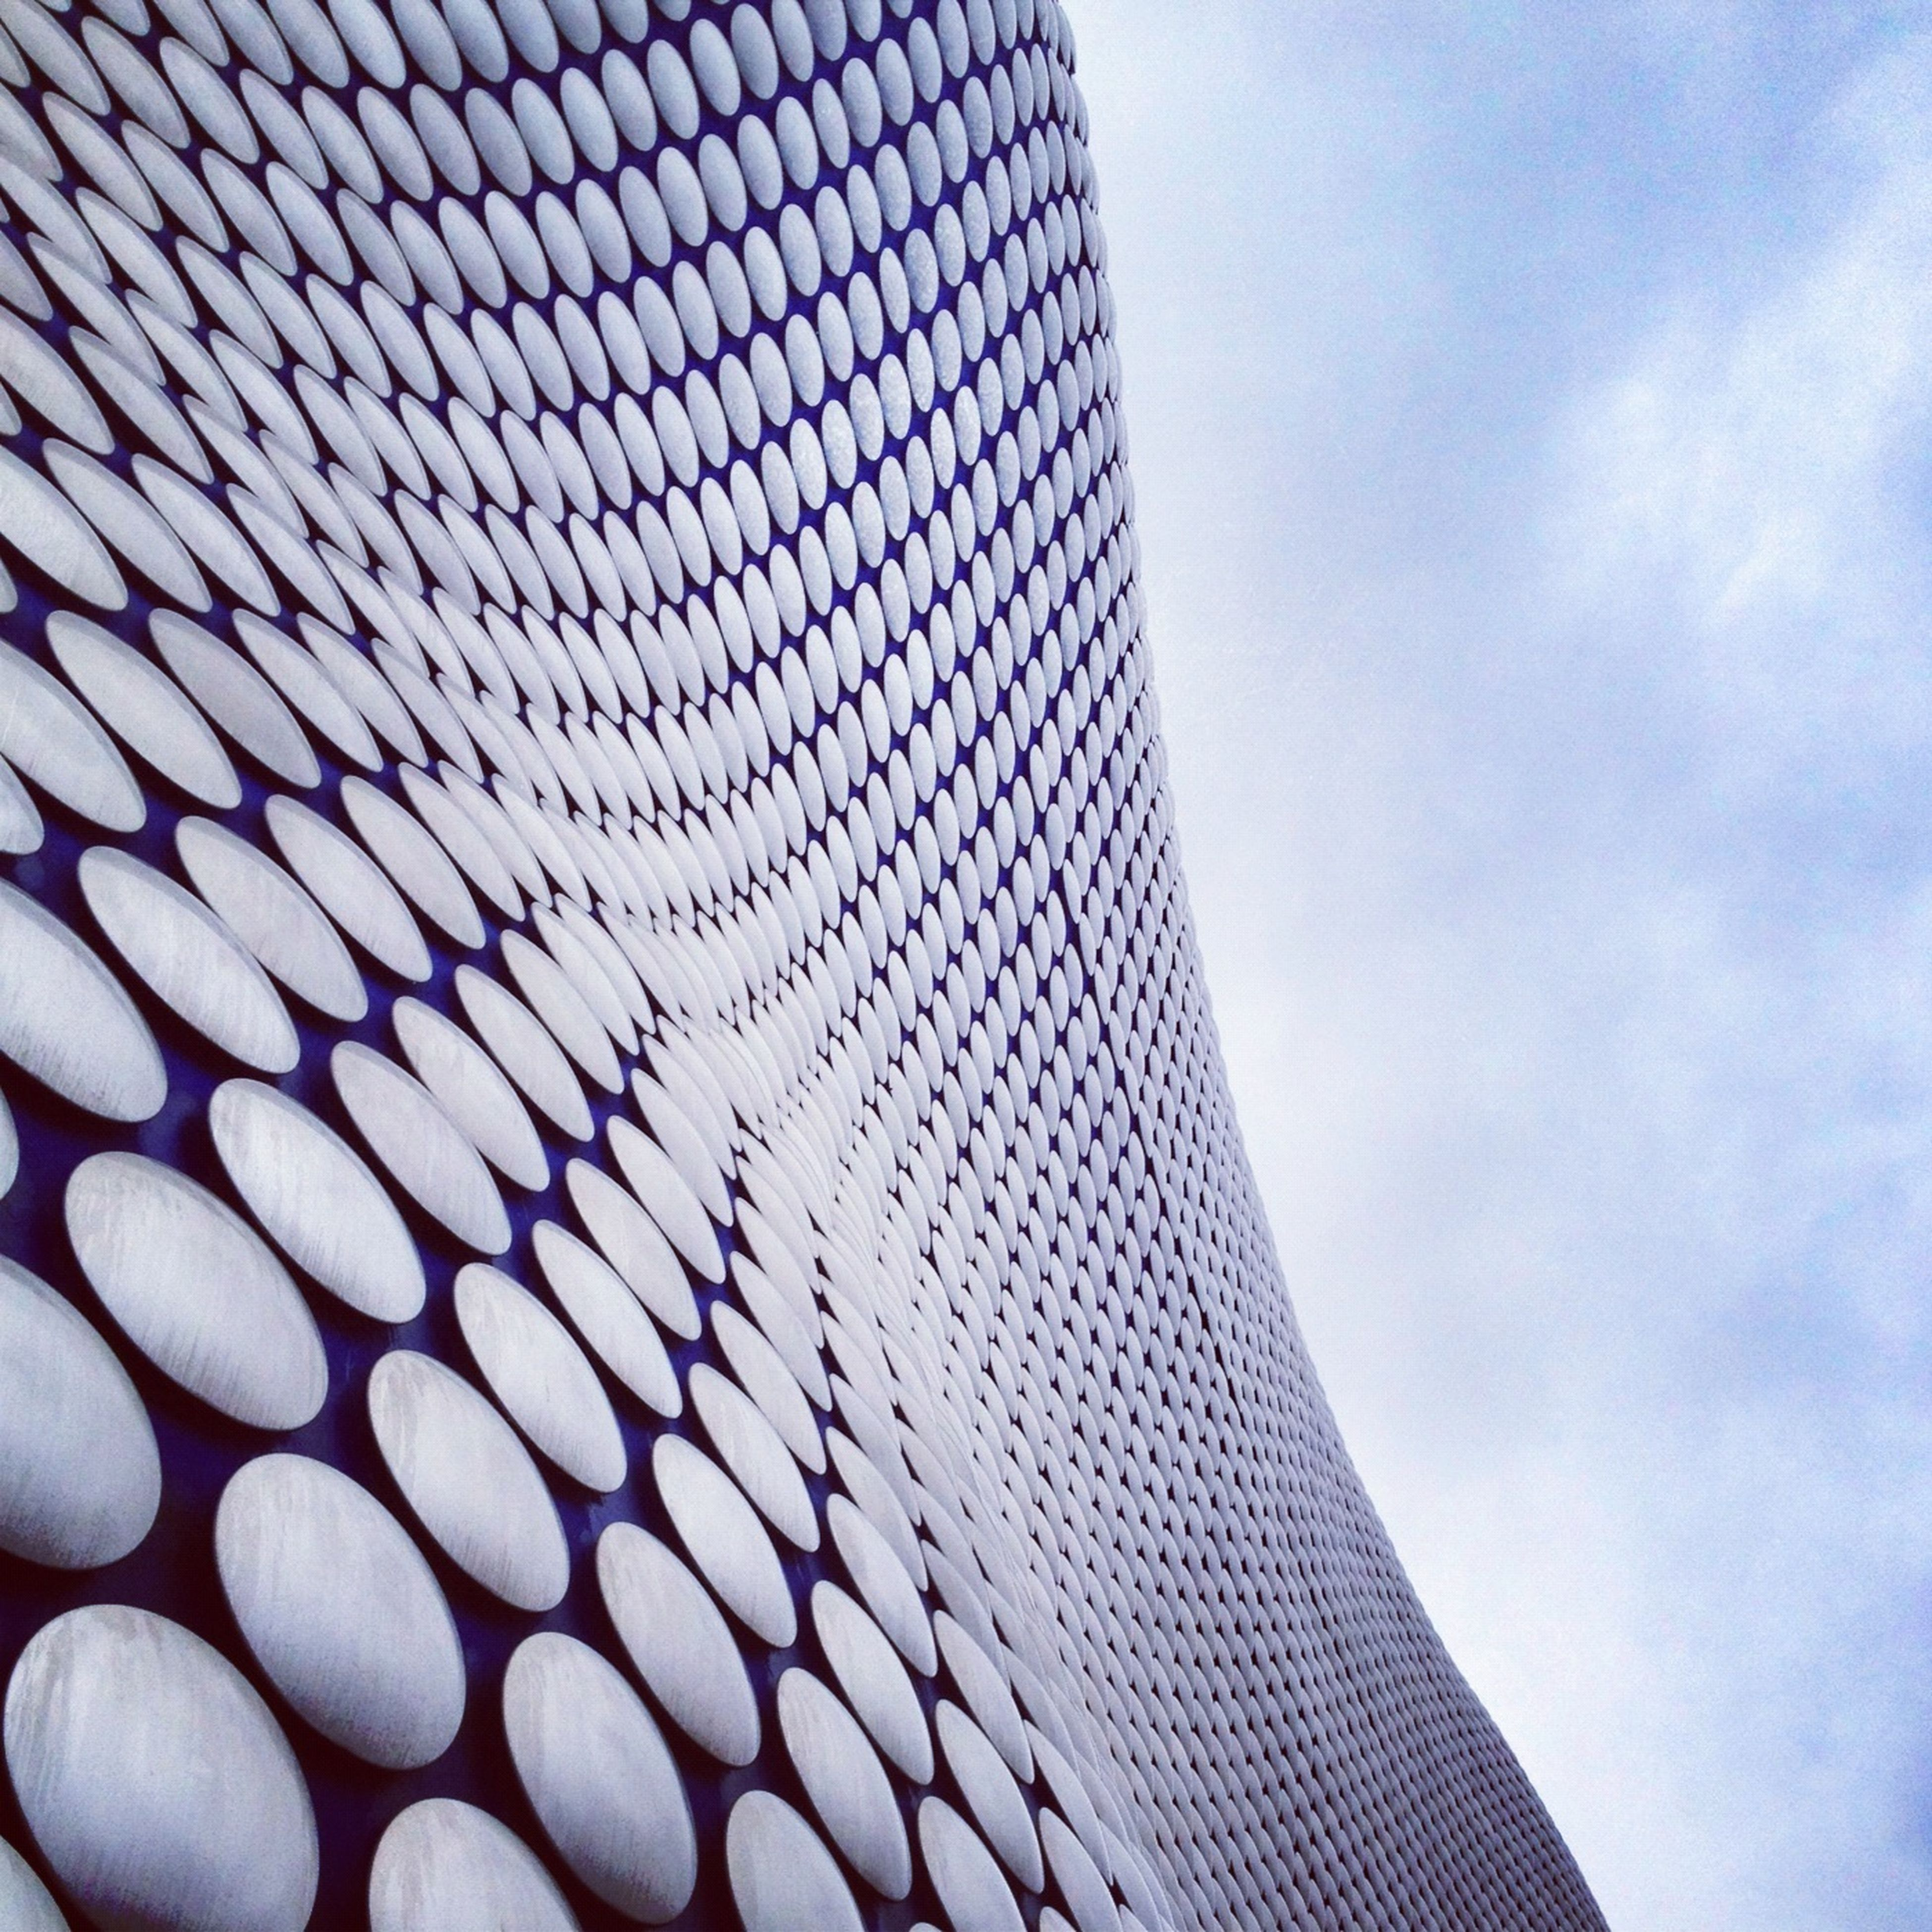 low angle view, sky, built structure, architecture, pattern, building exterior, cloud - sky, modern, day, outdoors, cloud, design, no people, blue, part of, office building, directly below, metal, architectural feature, close-up